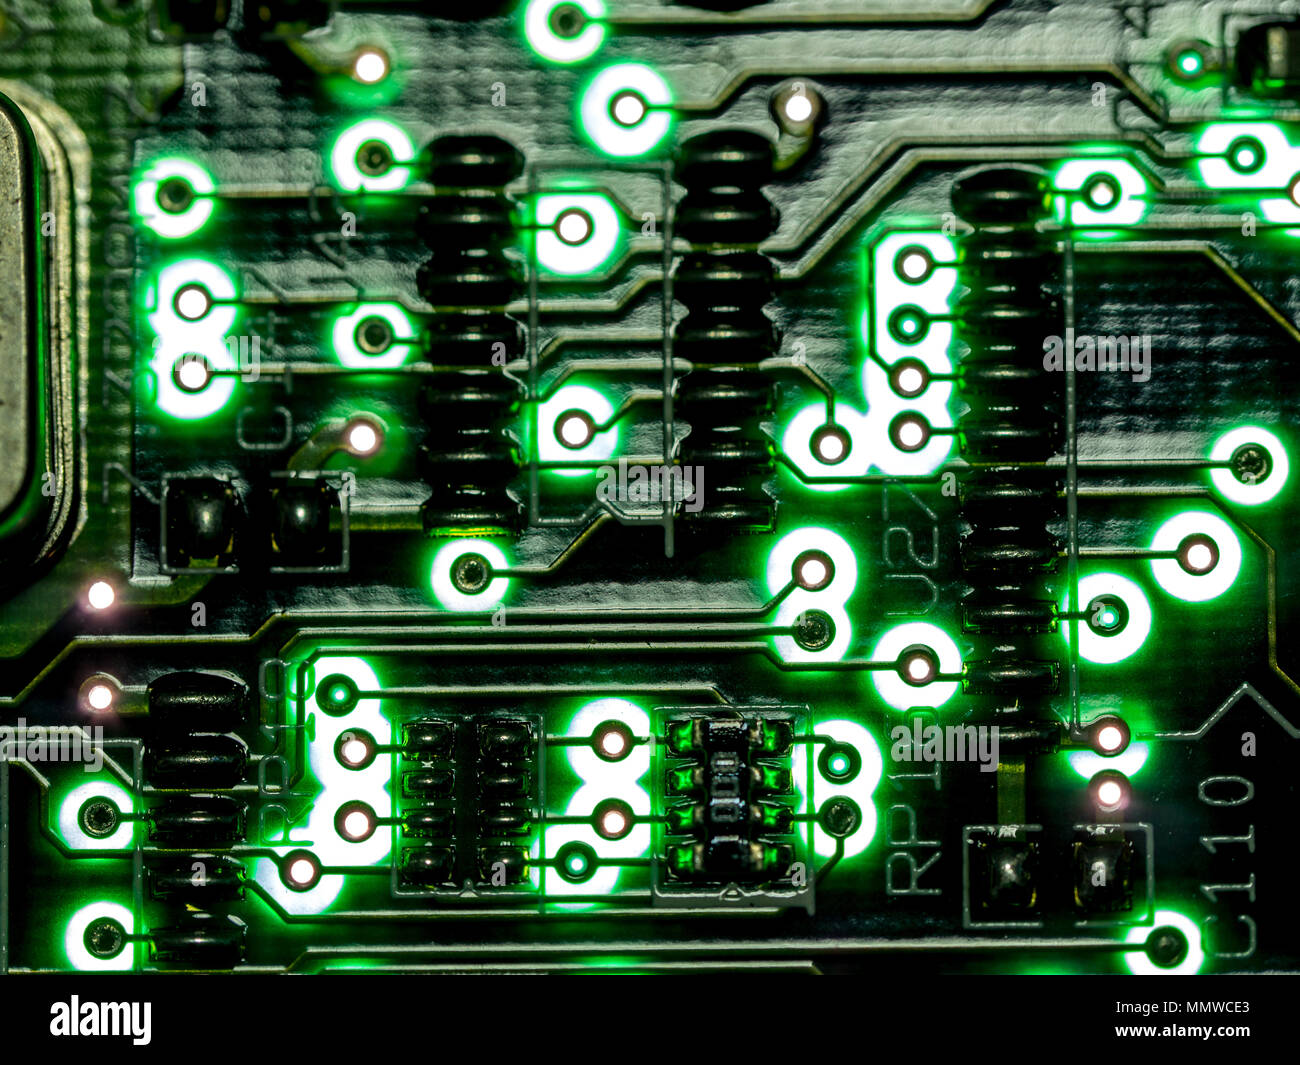 Close Up Of Computer Hard Drive Circuit Board In Neon Colors